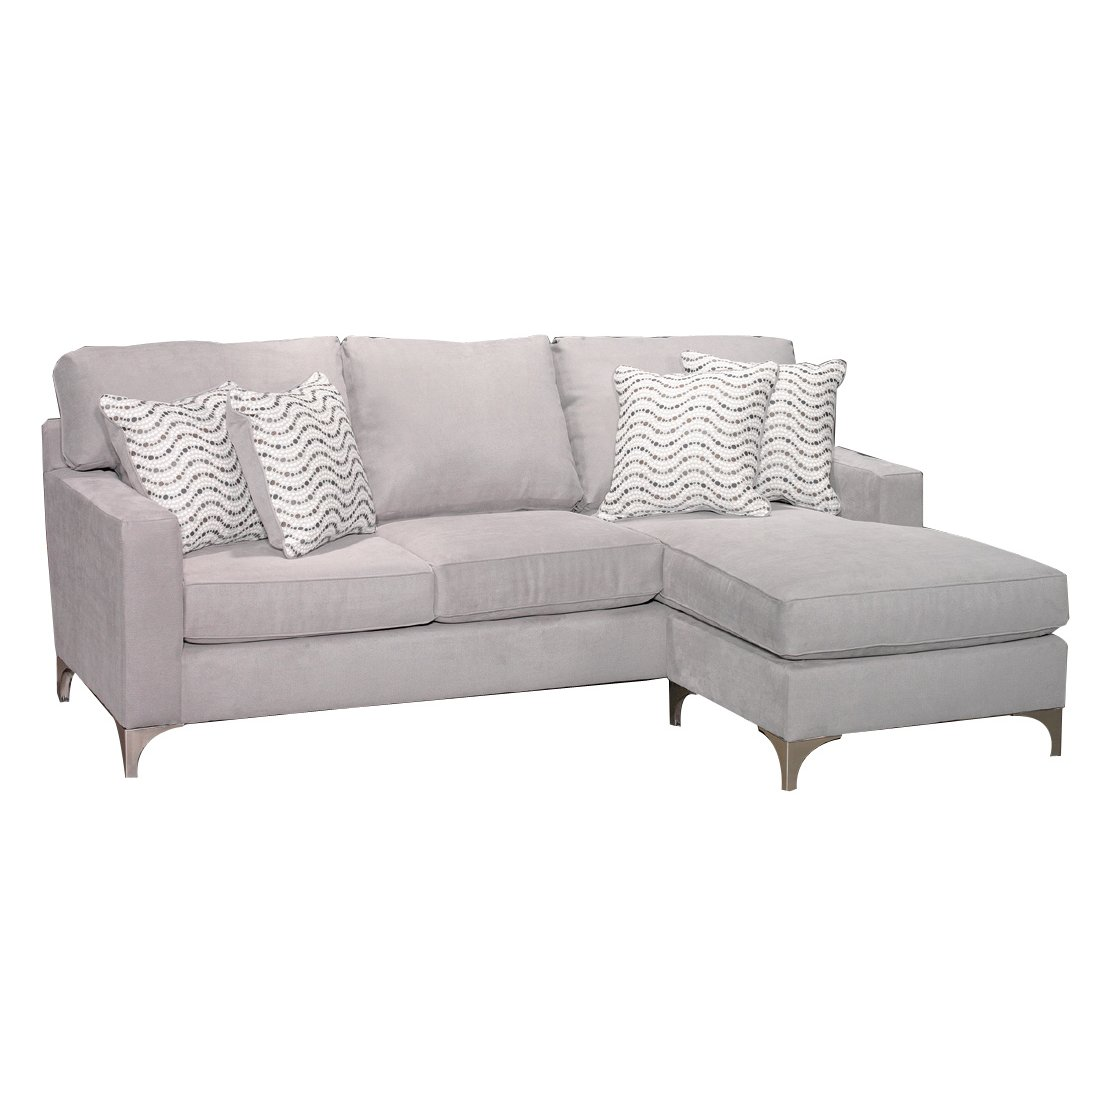 Buy couch images rumah minimalis for Sofa table rc willey